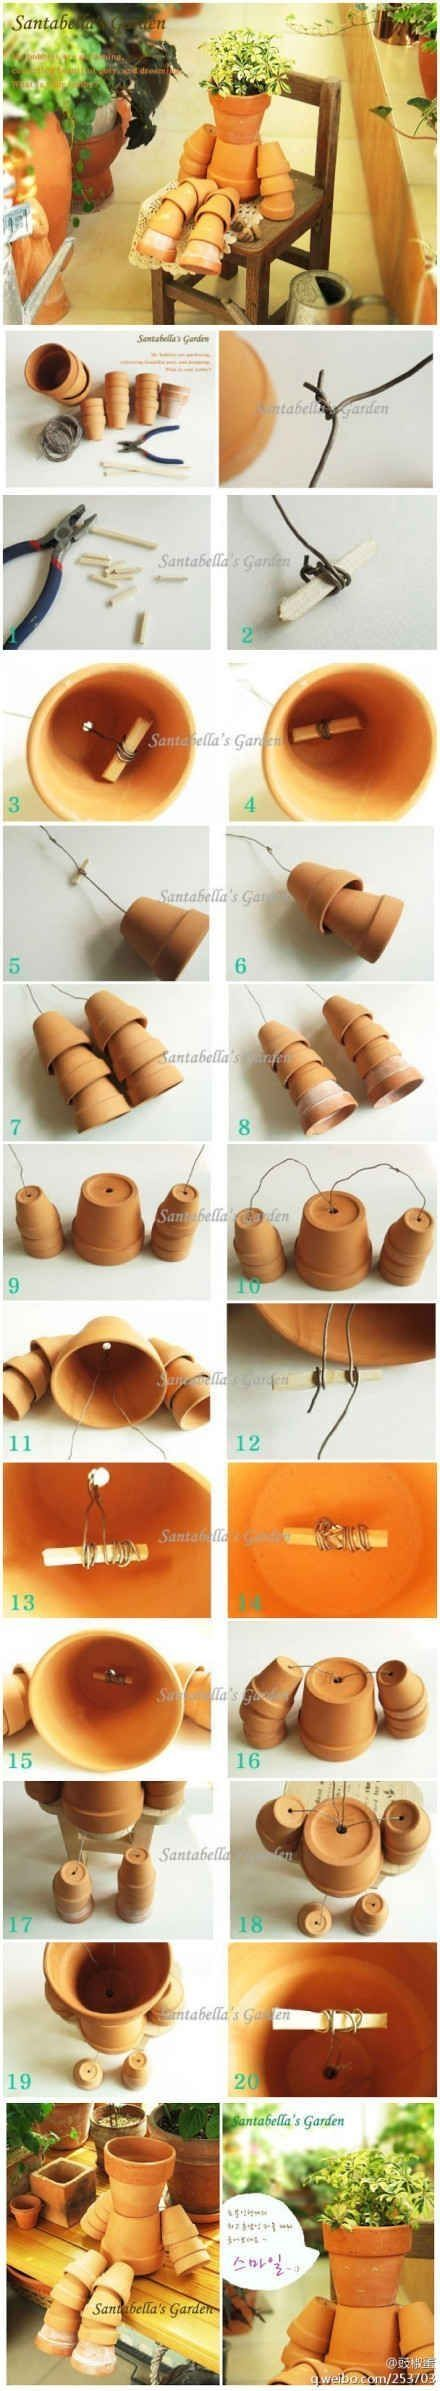 How to make Clay Pot Flower People by bellabluetwo